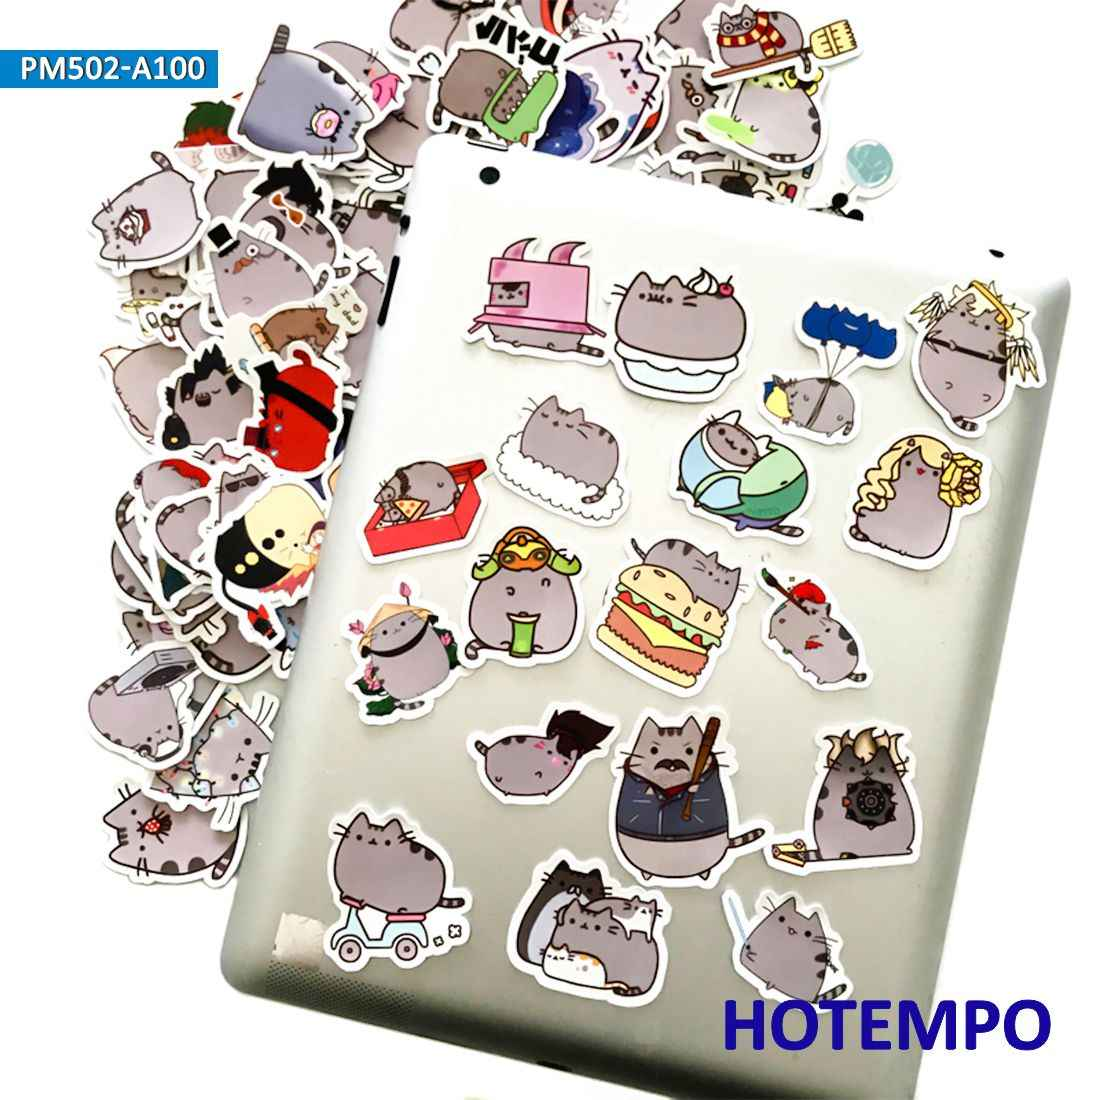 100pcs cartoon fat cat emoji cute stickers for kids diy mobile phone laptop luggage guitar case